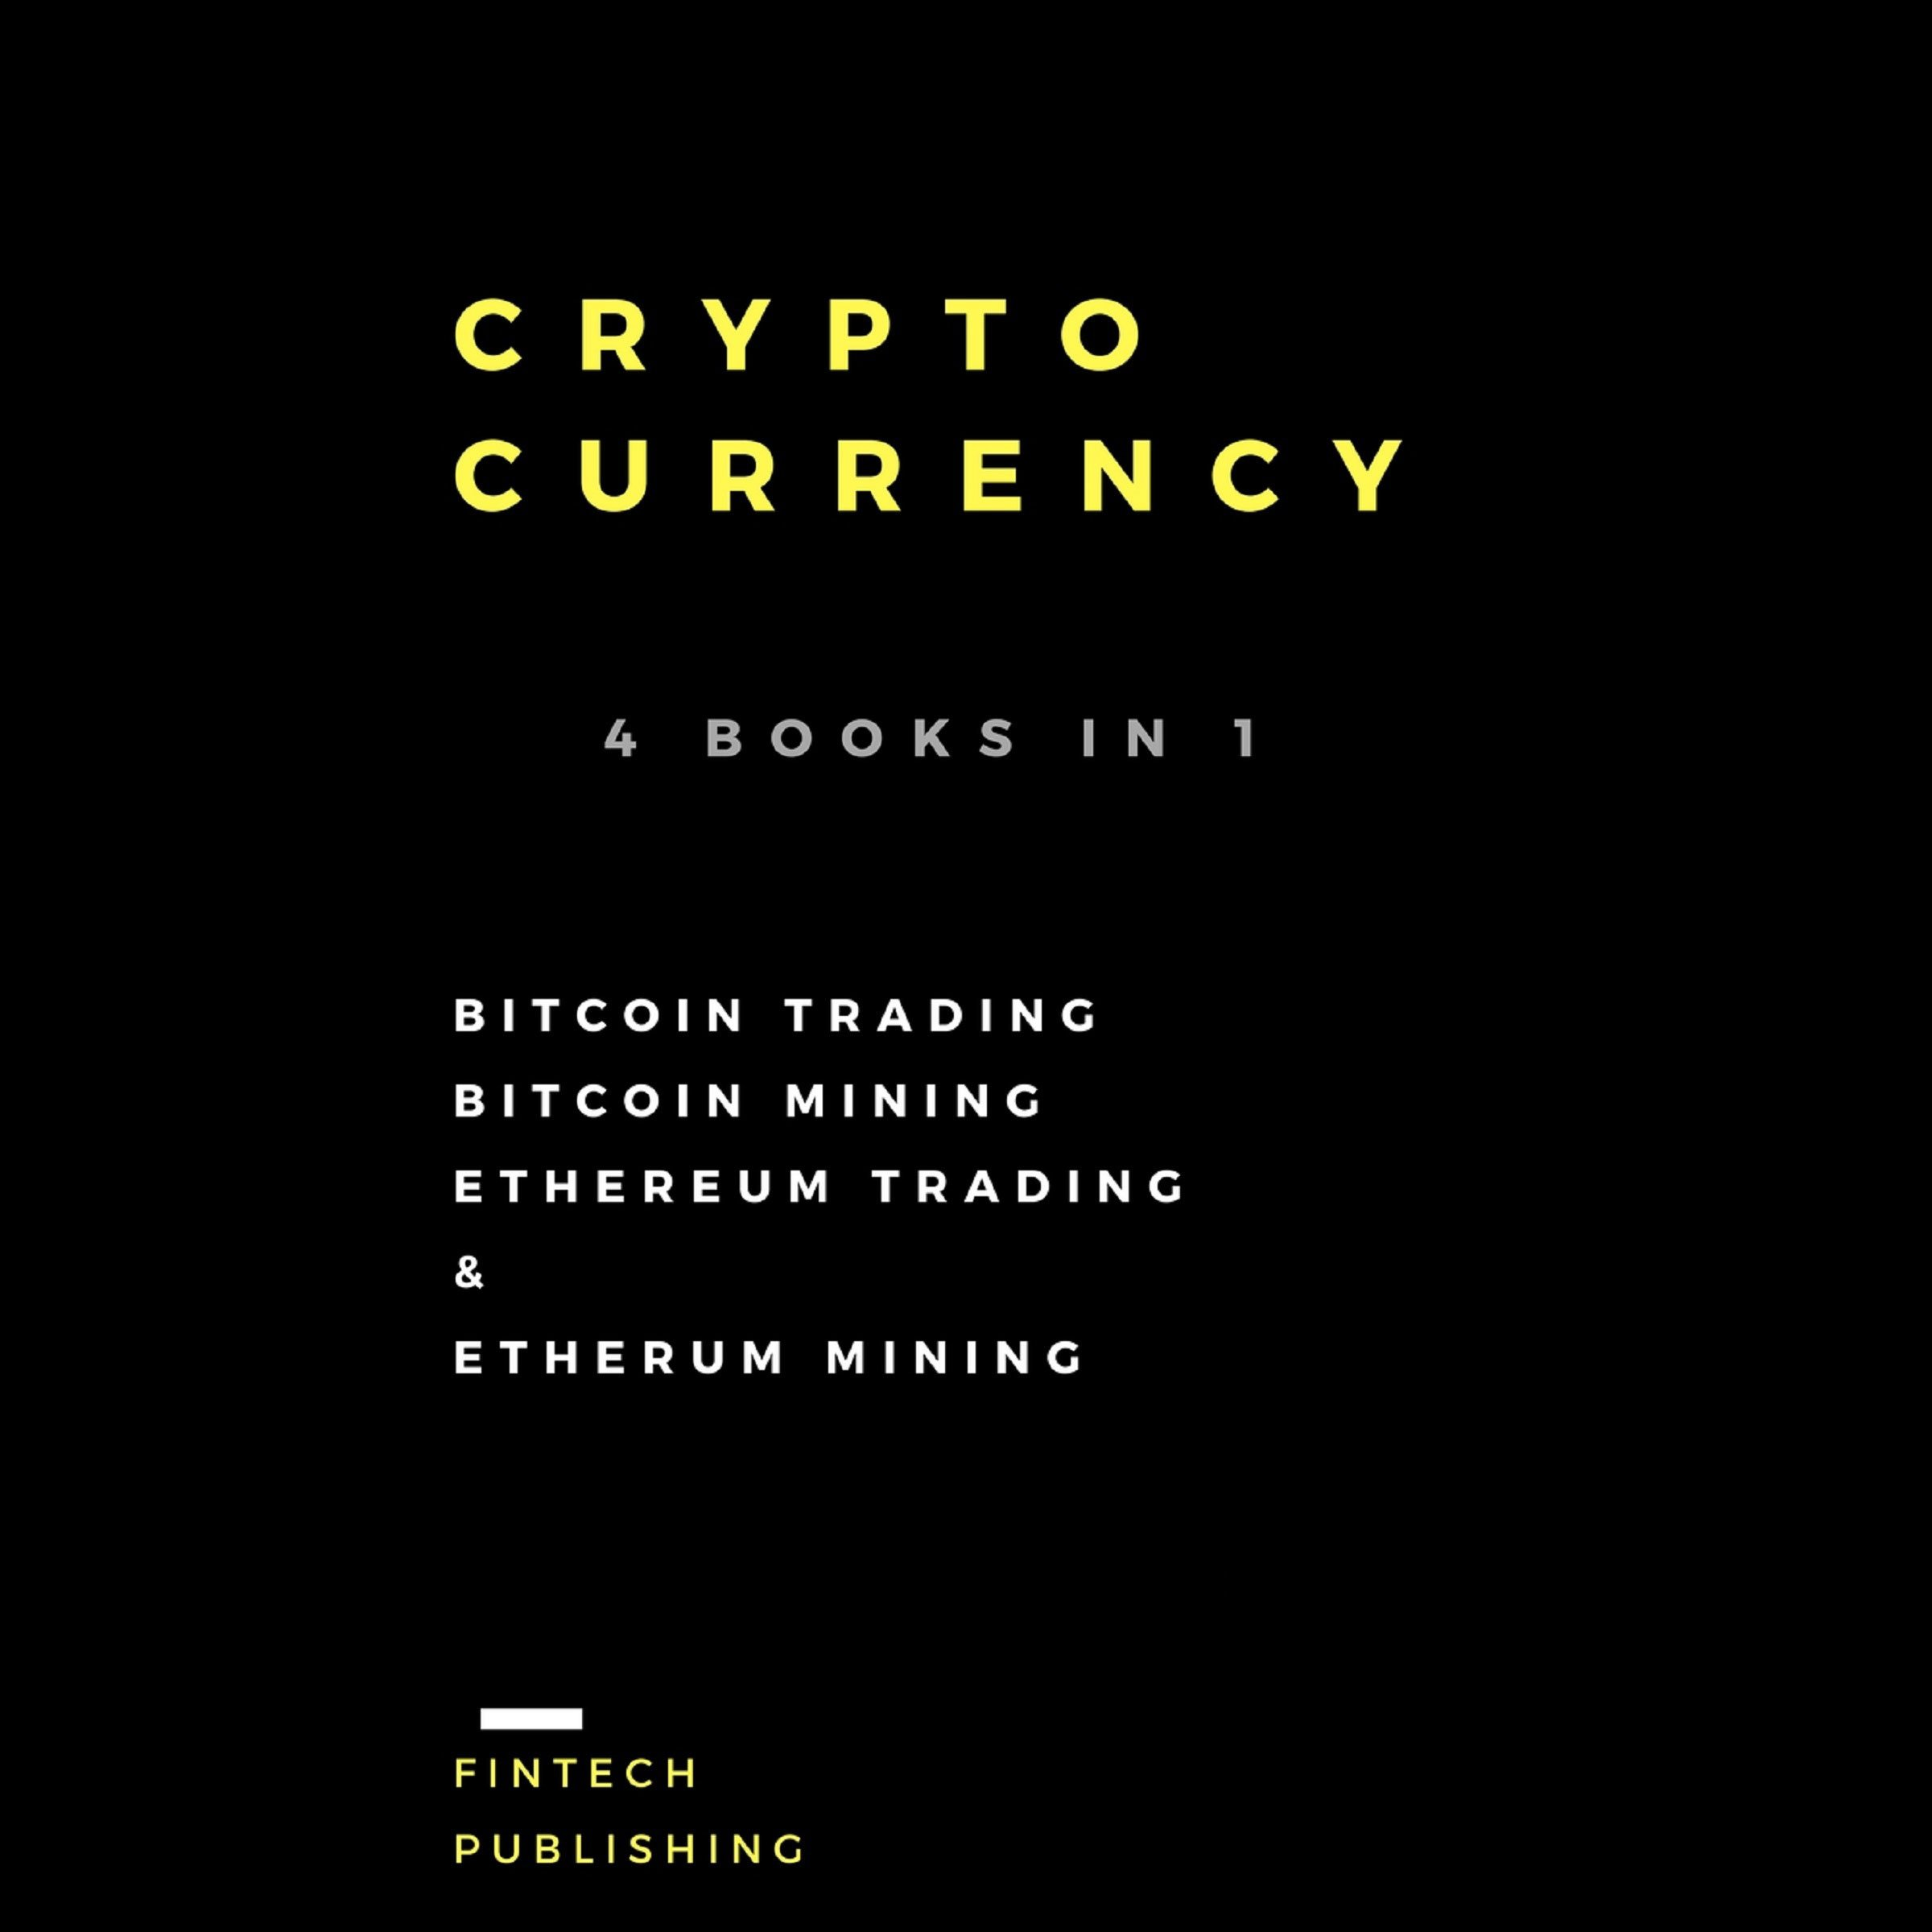 Cryptocurrency: 4 Books in 1: Bitcoin Trading, Bitcoin Mining, Ethereum Trading & Etherum Mining